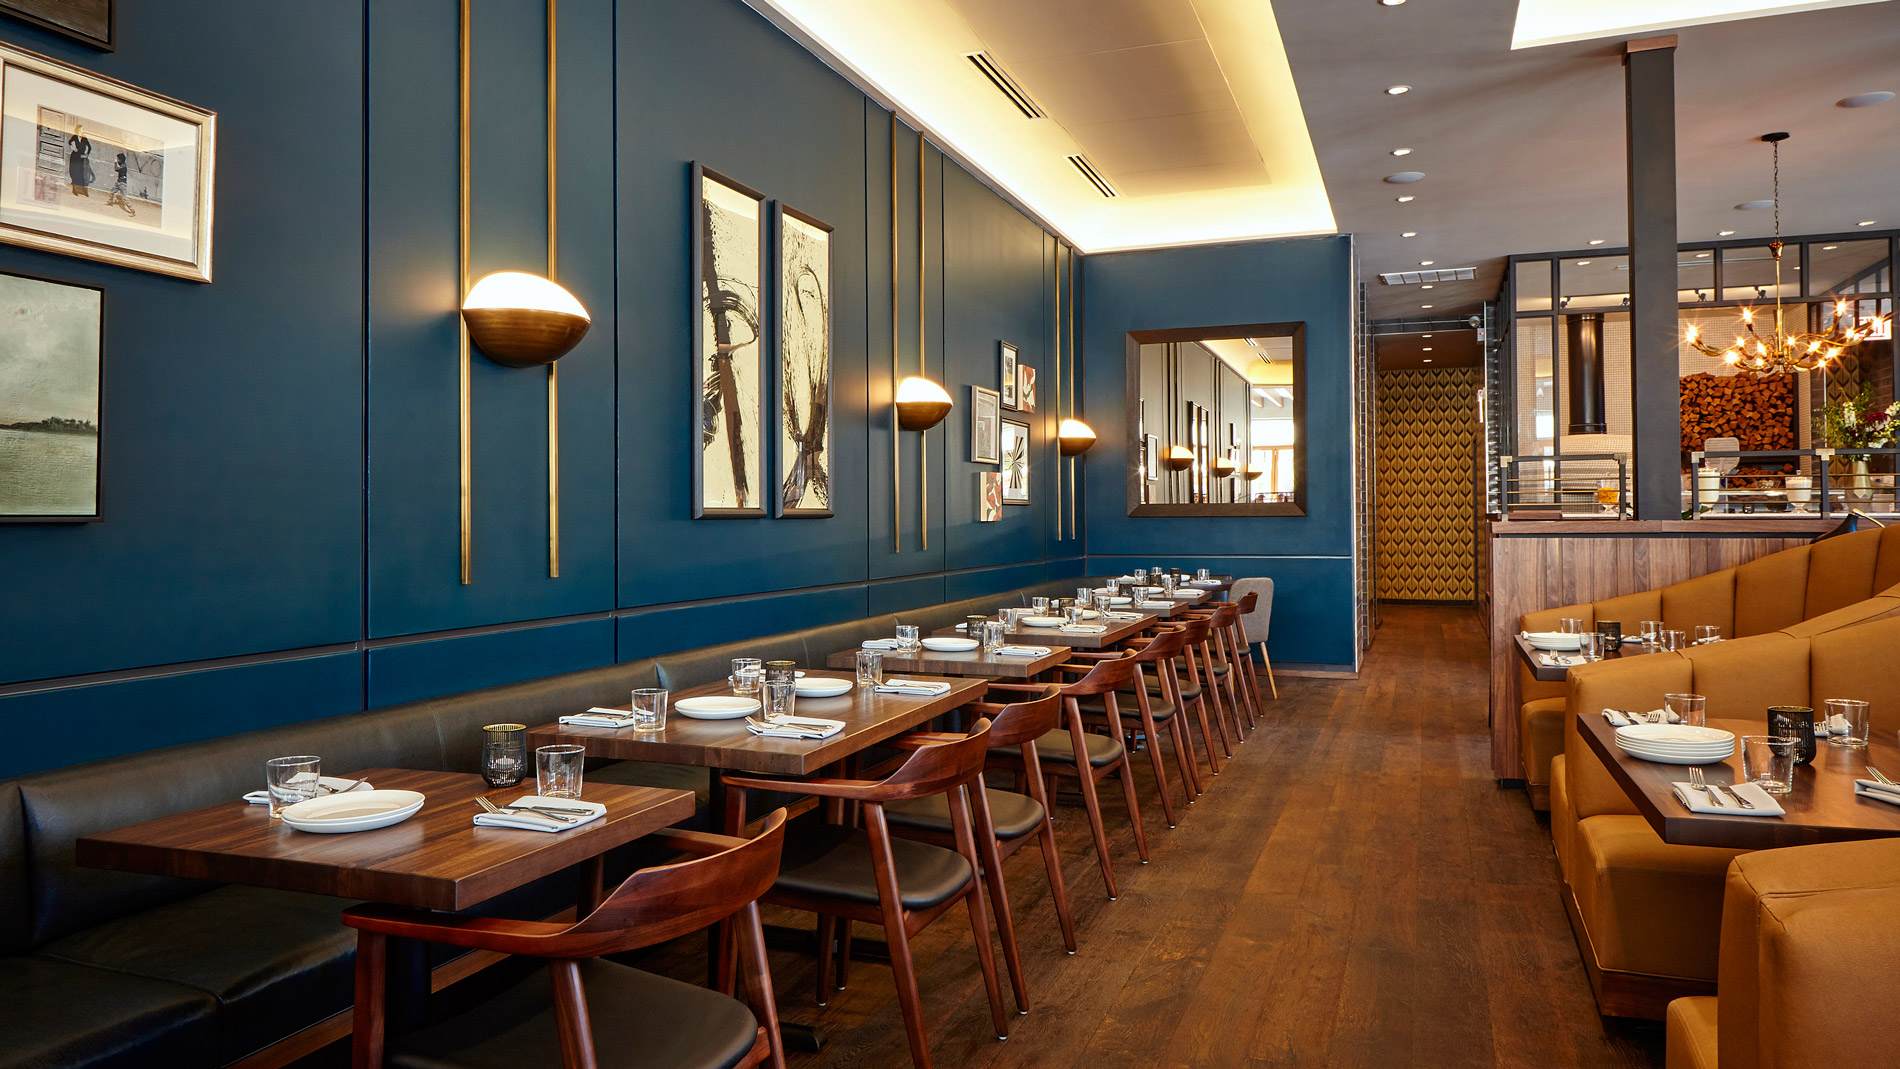 wonder walls: how restaurants are getting into custom décor | food